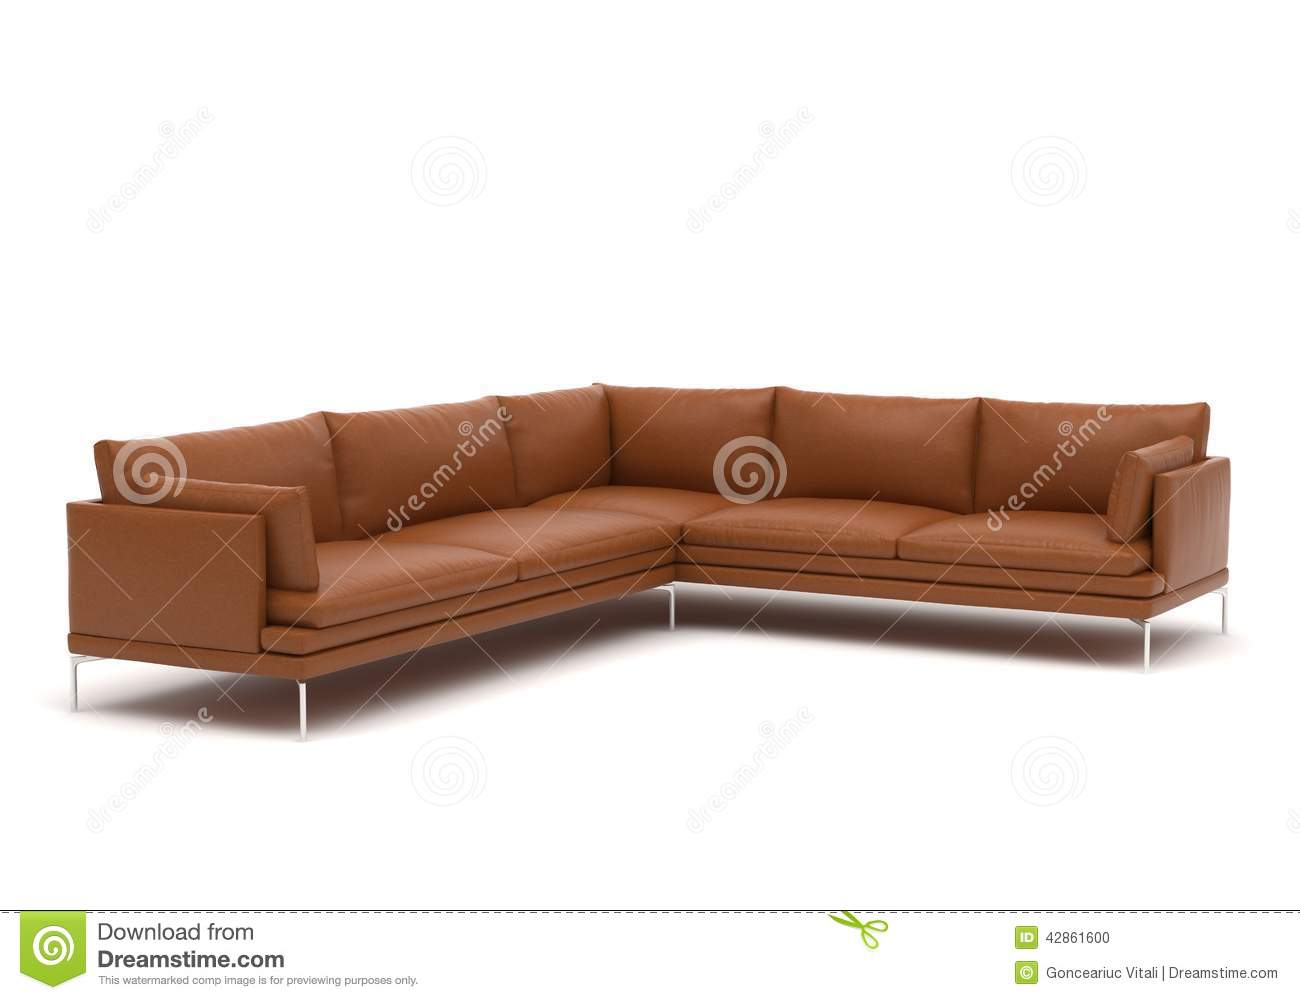 zanotta william corner sofa stock photo image 42861600. Black Bedroom Furniture Sets. Home Design Ideas